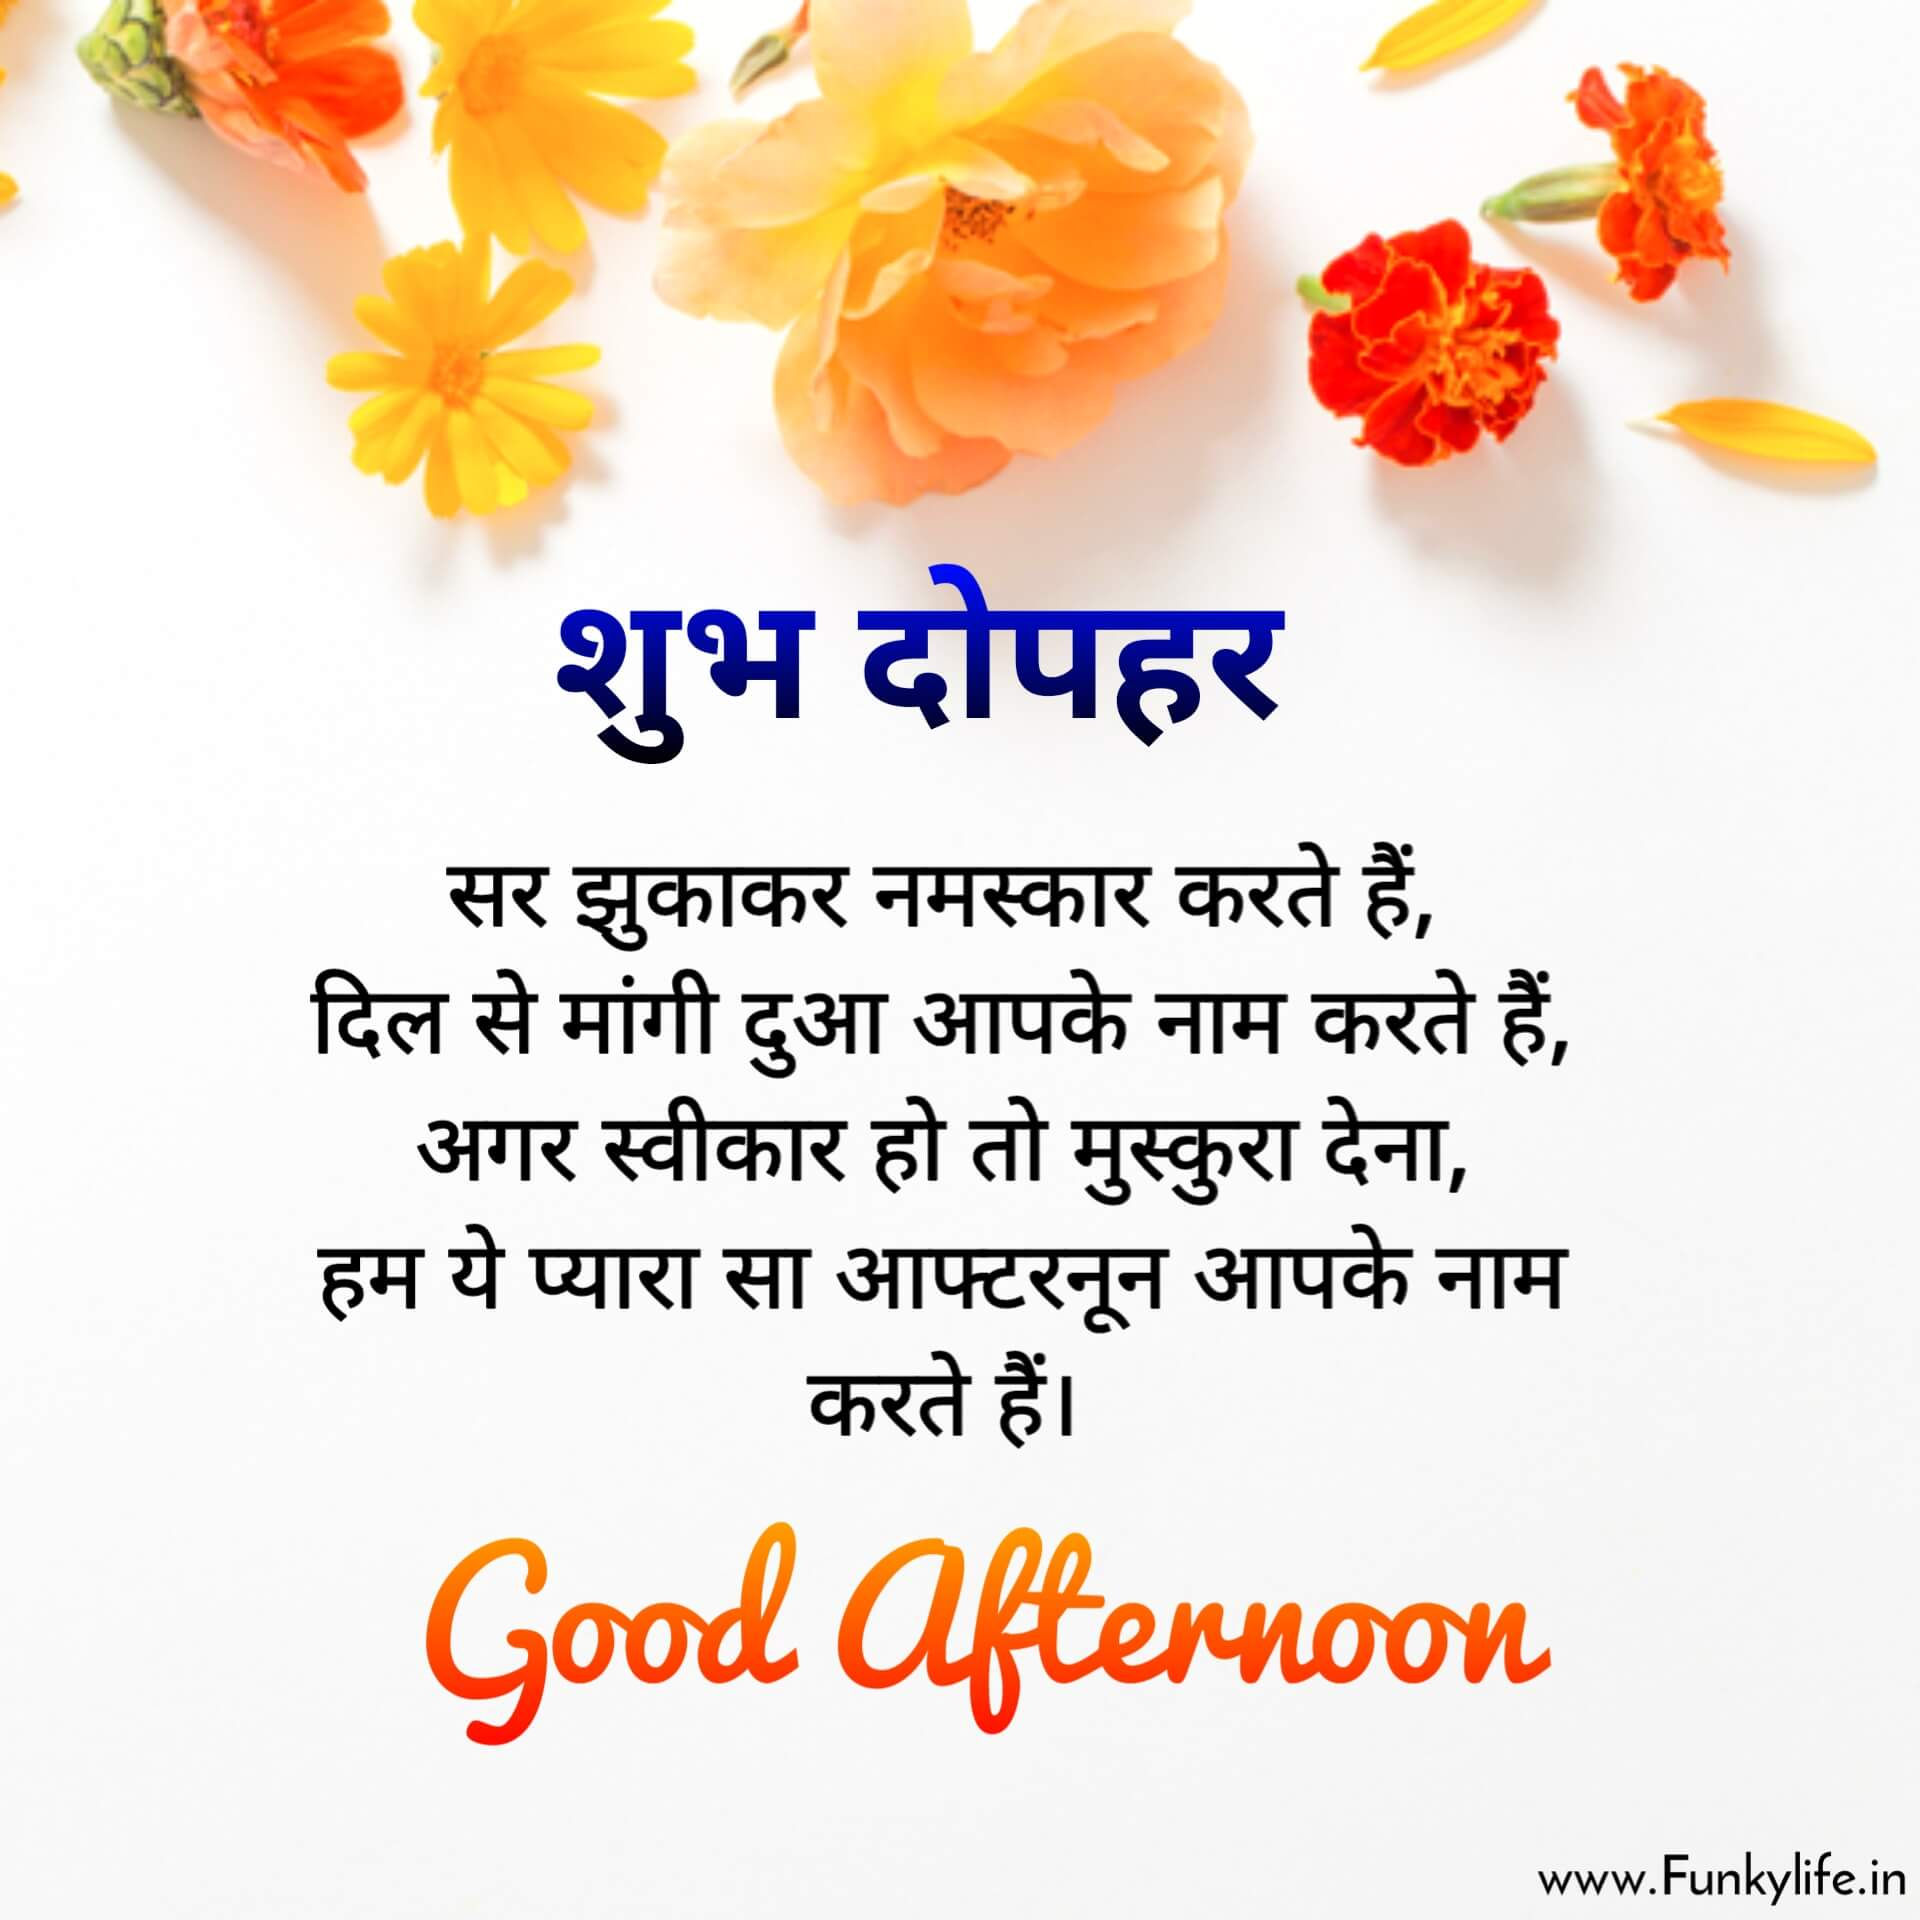 Shubh Dopahar Good Afternoon Image With Quote in Hindi